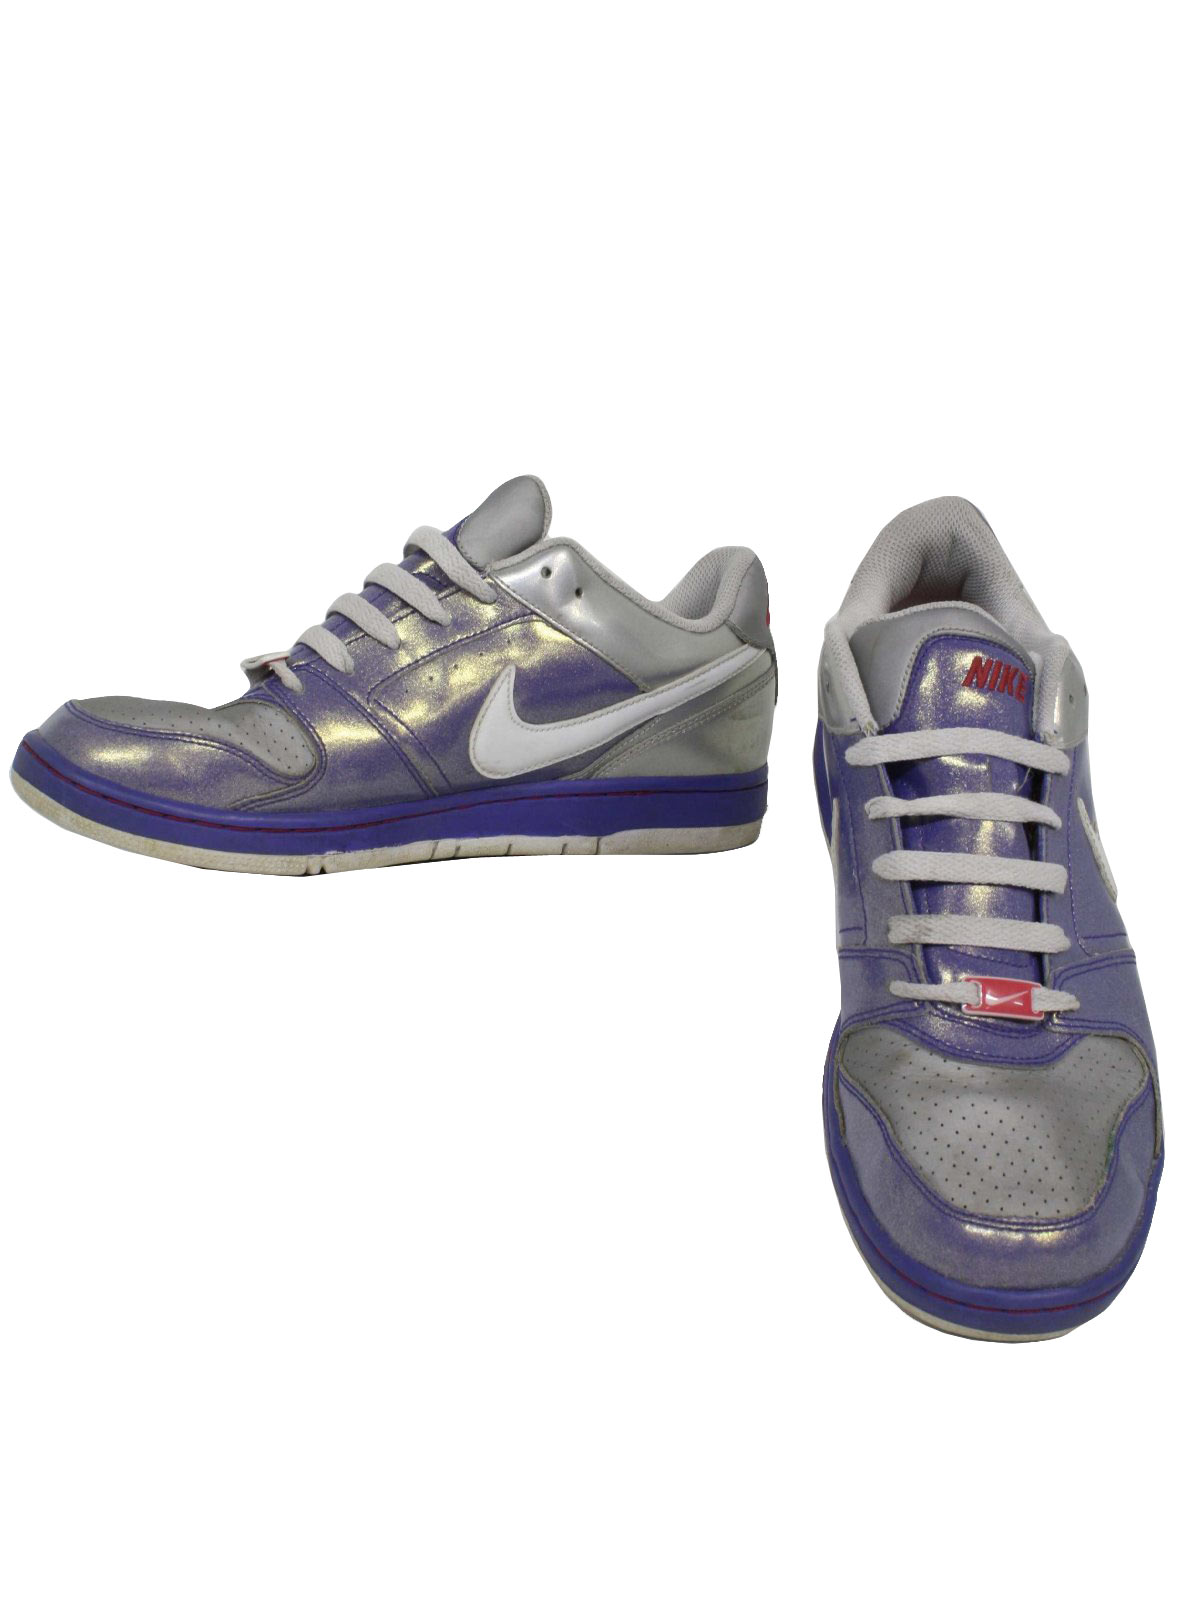 Excellent School Nike Shoes 1990 199039s Vintage Nike Shoes  90s  Nike  Womens